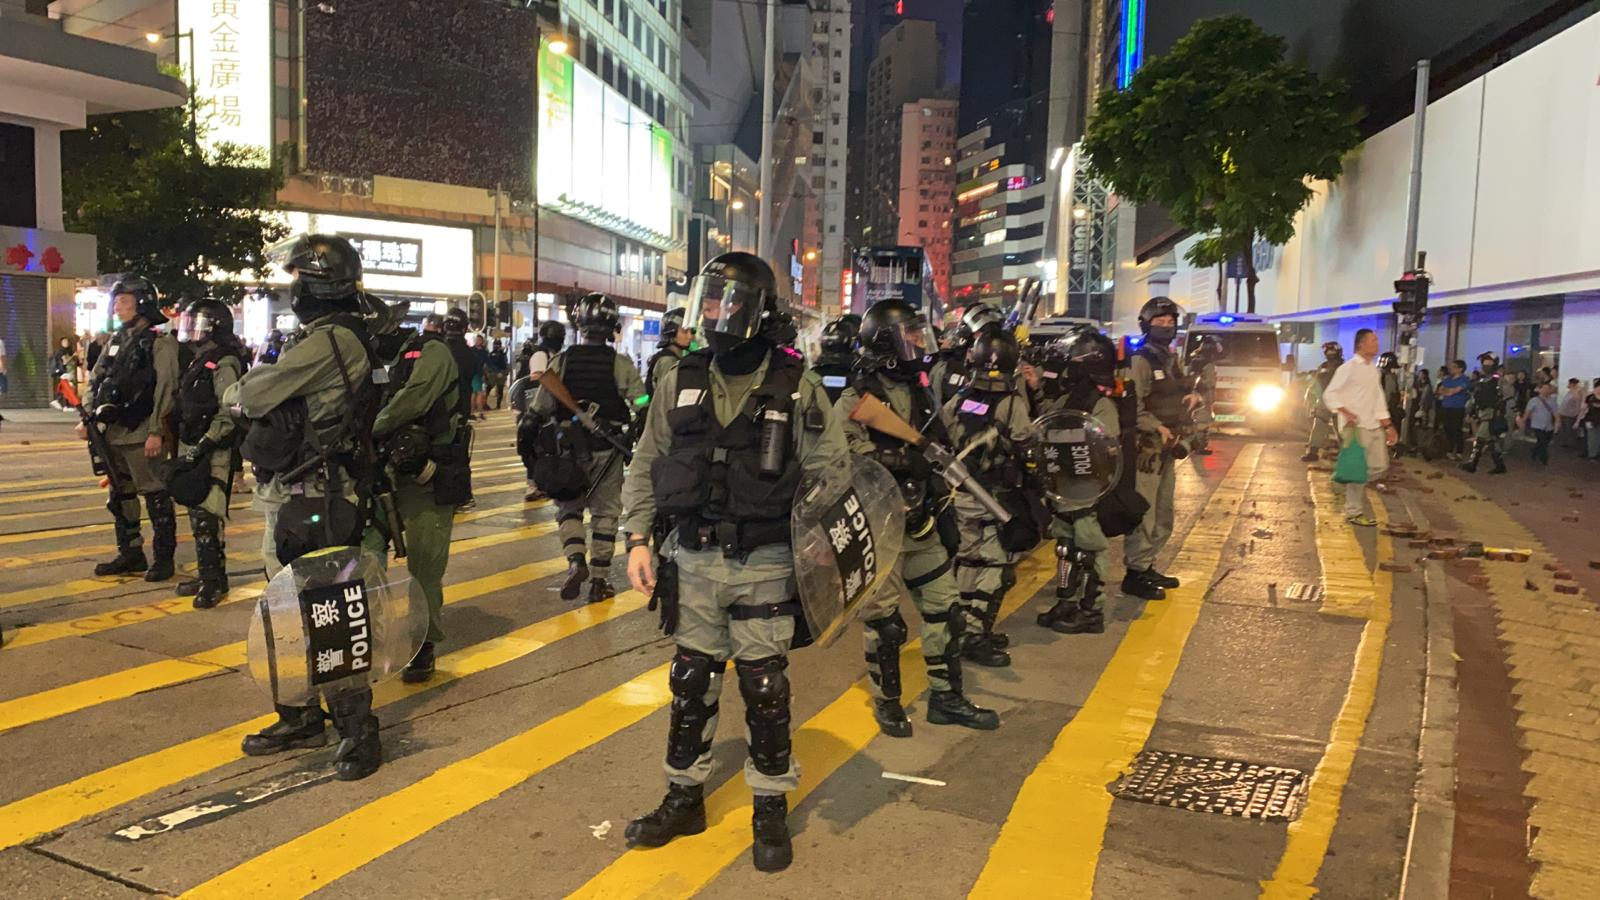 Riot police guard the street in Causeway Bay shopping district, Hong Kong.